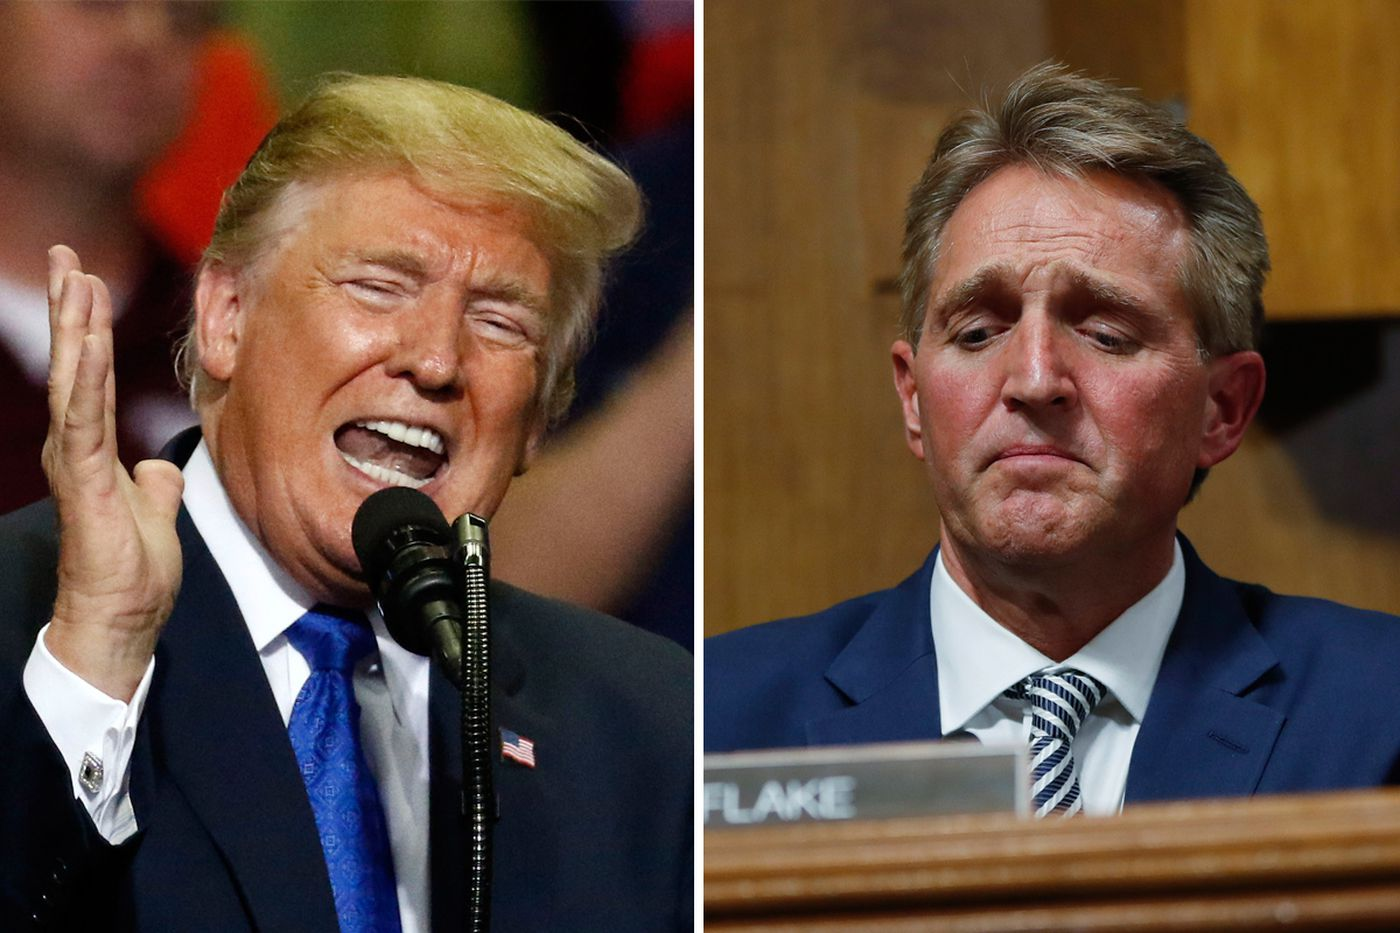 GOP Sen. Jeff Flake criticizes Trump's 'appalling' mockery of Christine Blasey Ford